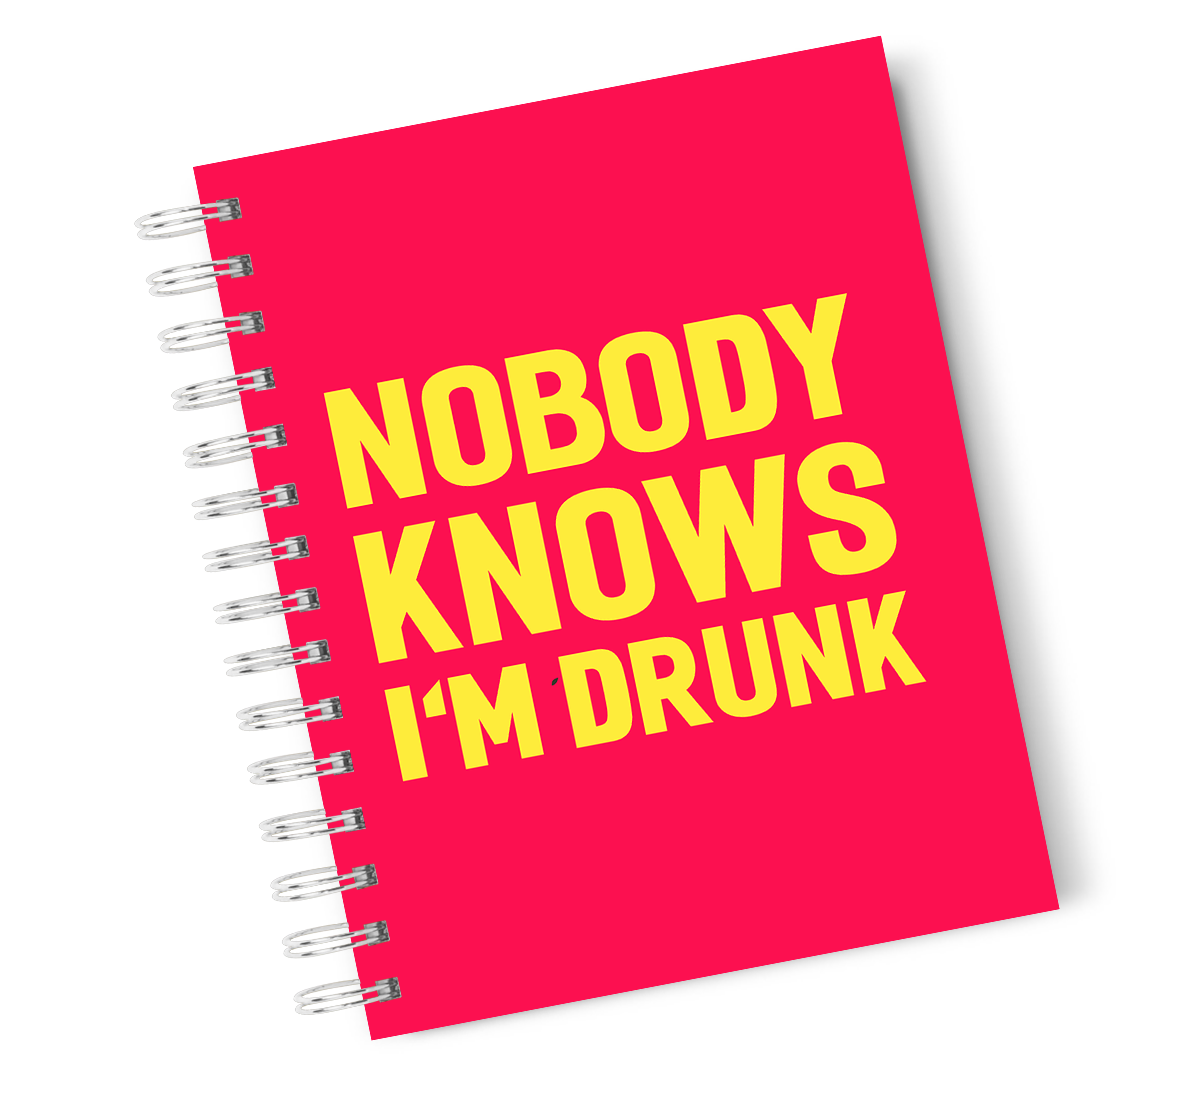 A4 Hardcover Notebook i Am Drunk Funny Spiral Notebook with High Quality Bright White Paper